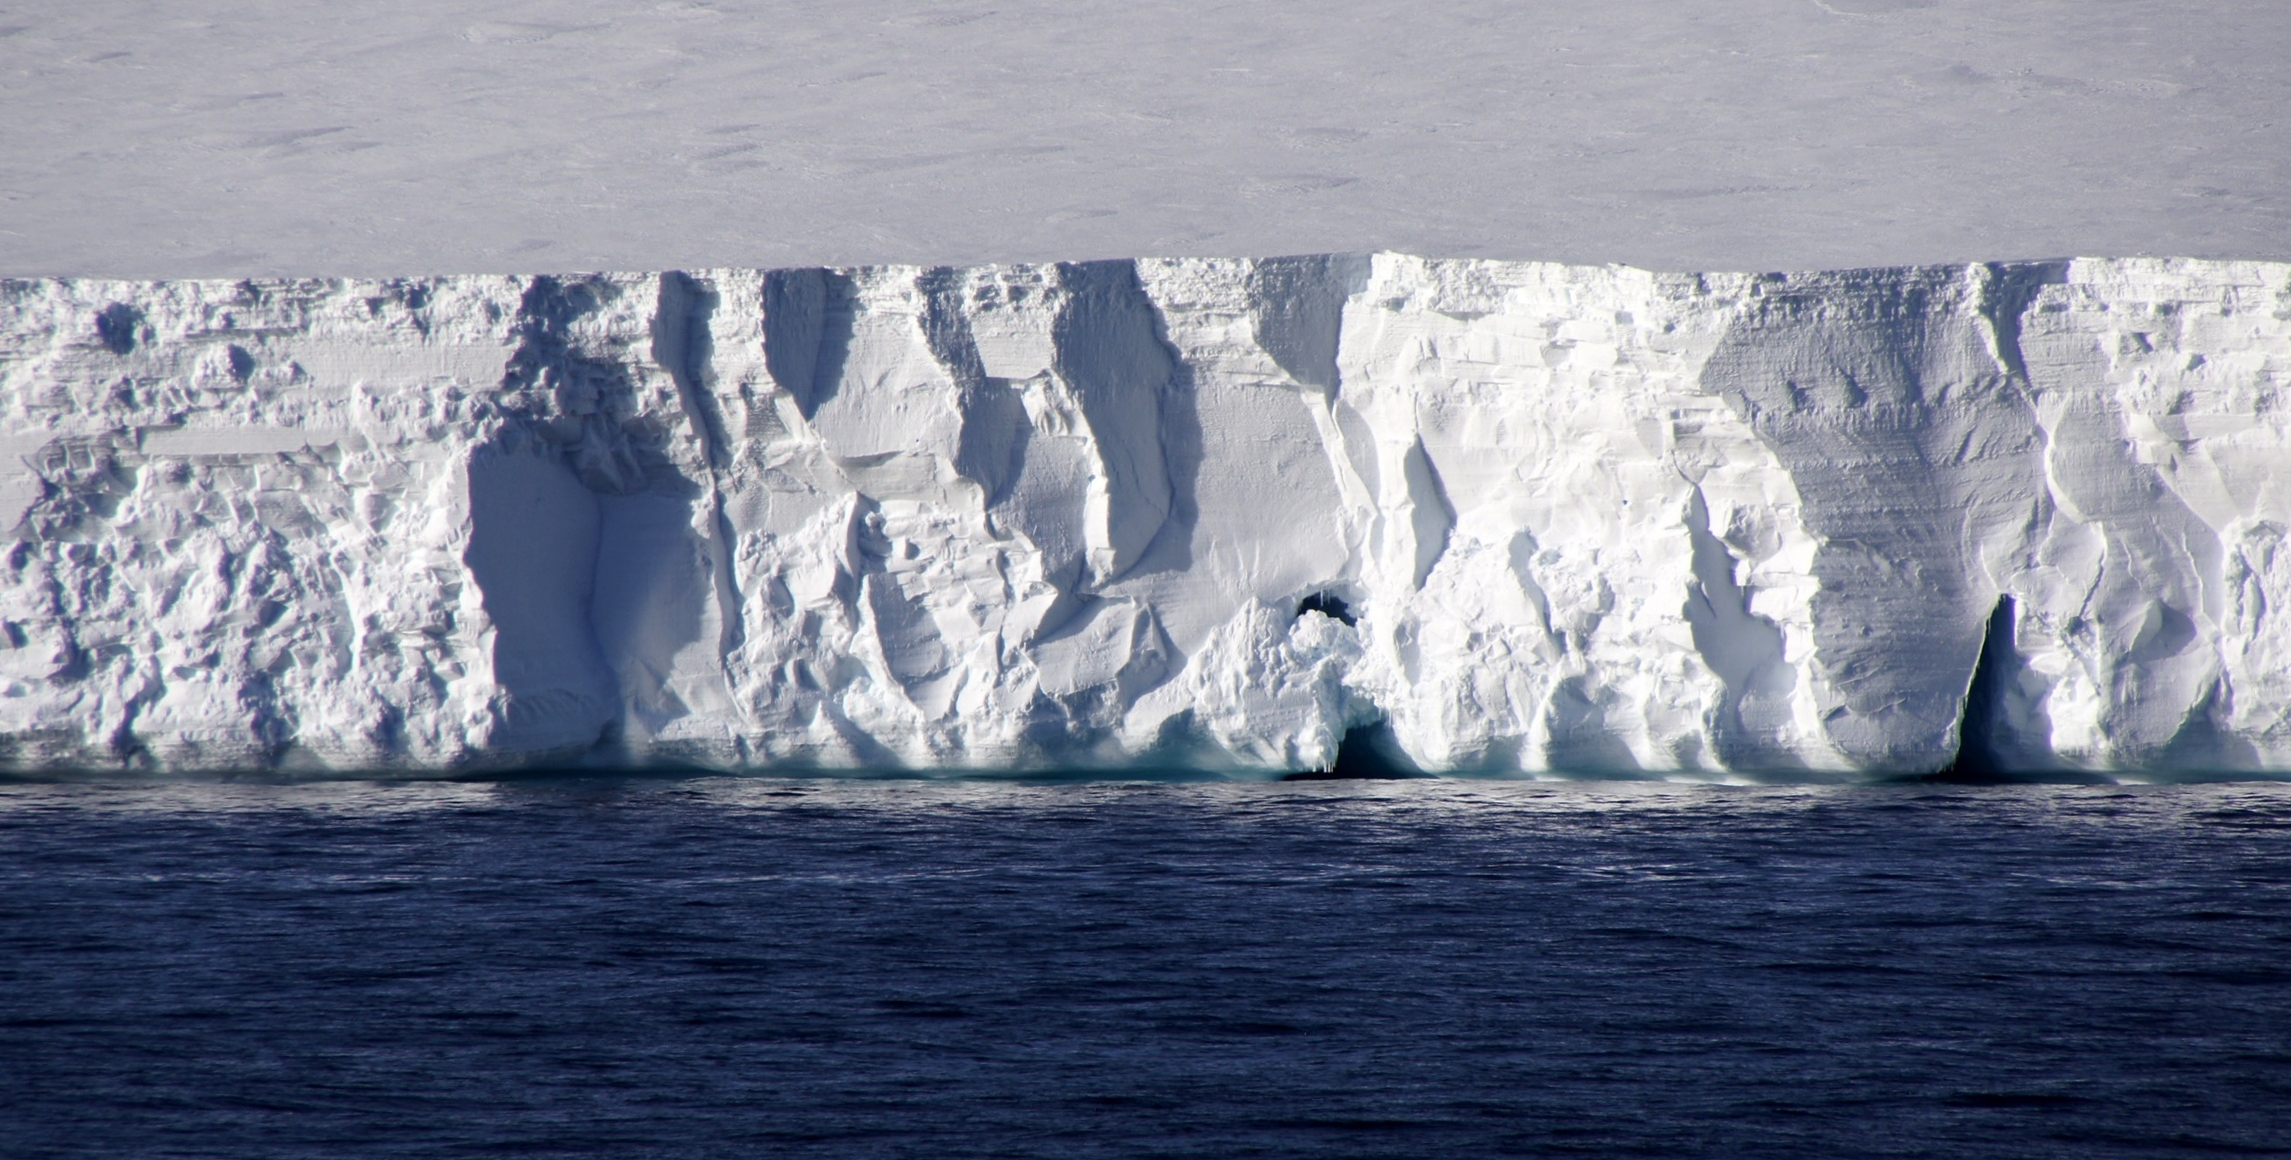 AntarcticaIcebarriers and Icebergs